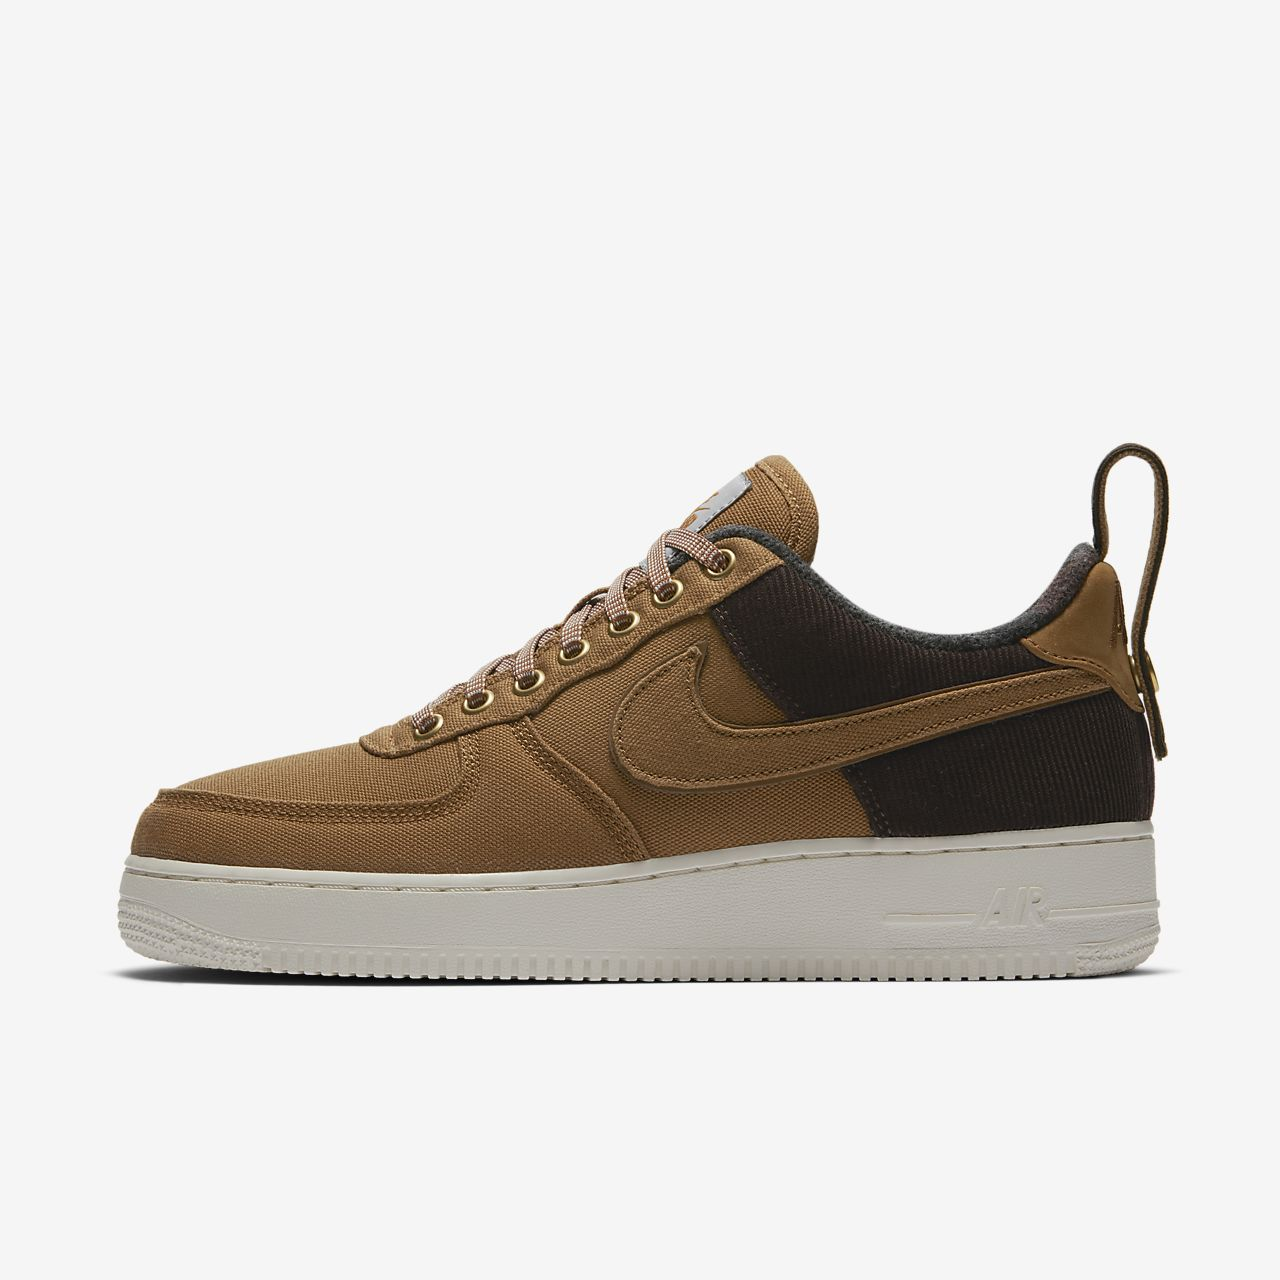 sports shoes f7348 59f46 ... Chaussure Nike x Carhartt WIP Air Force 1 pour Homme